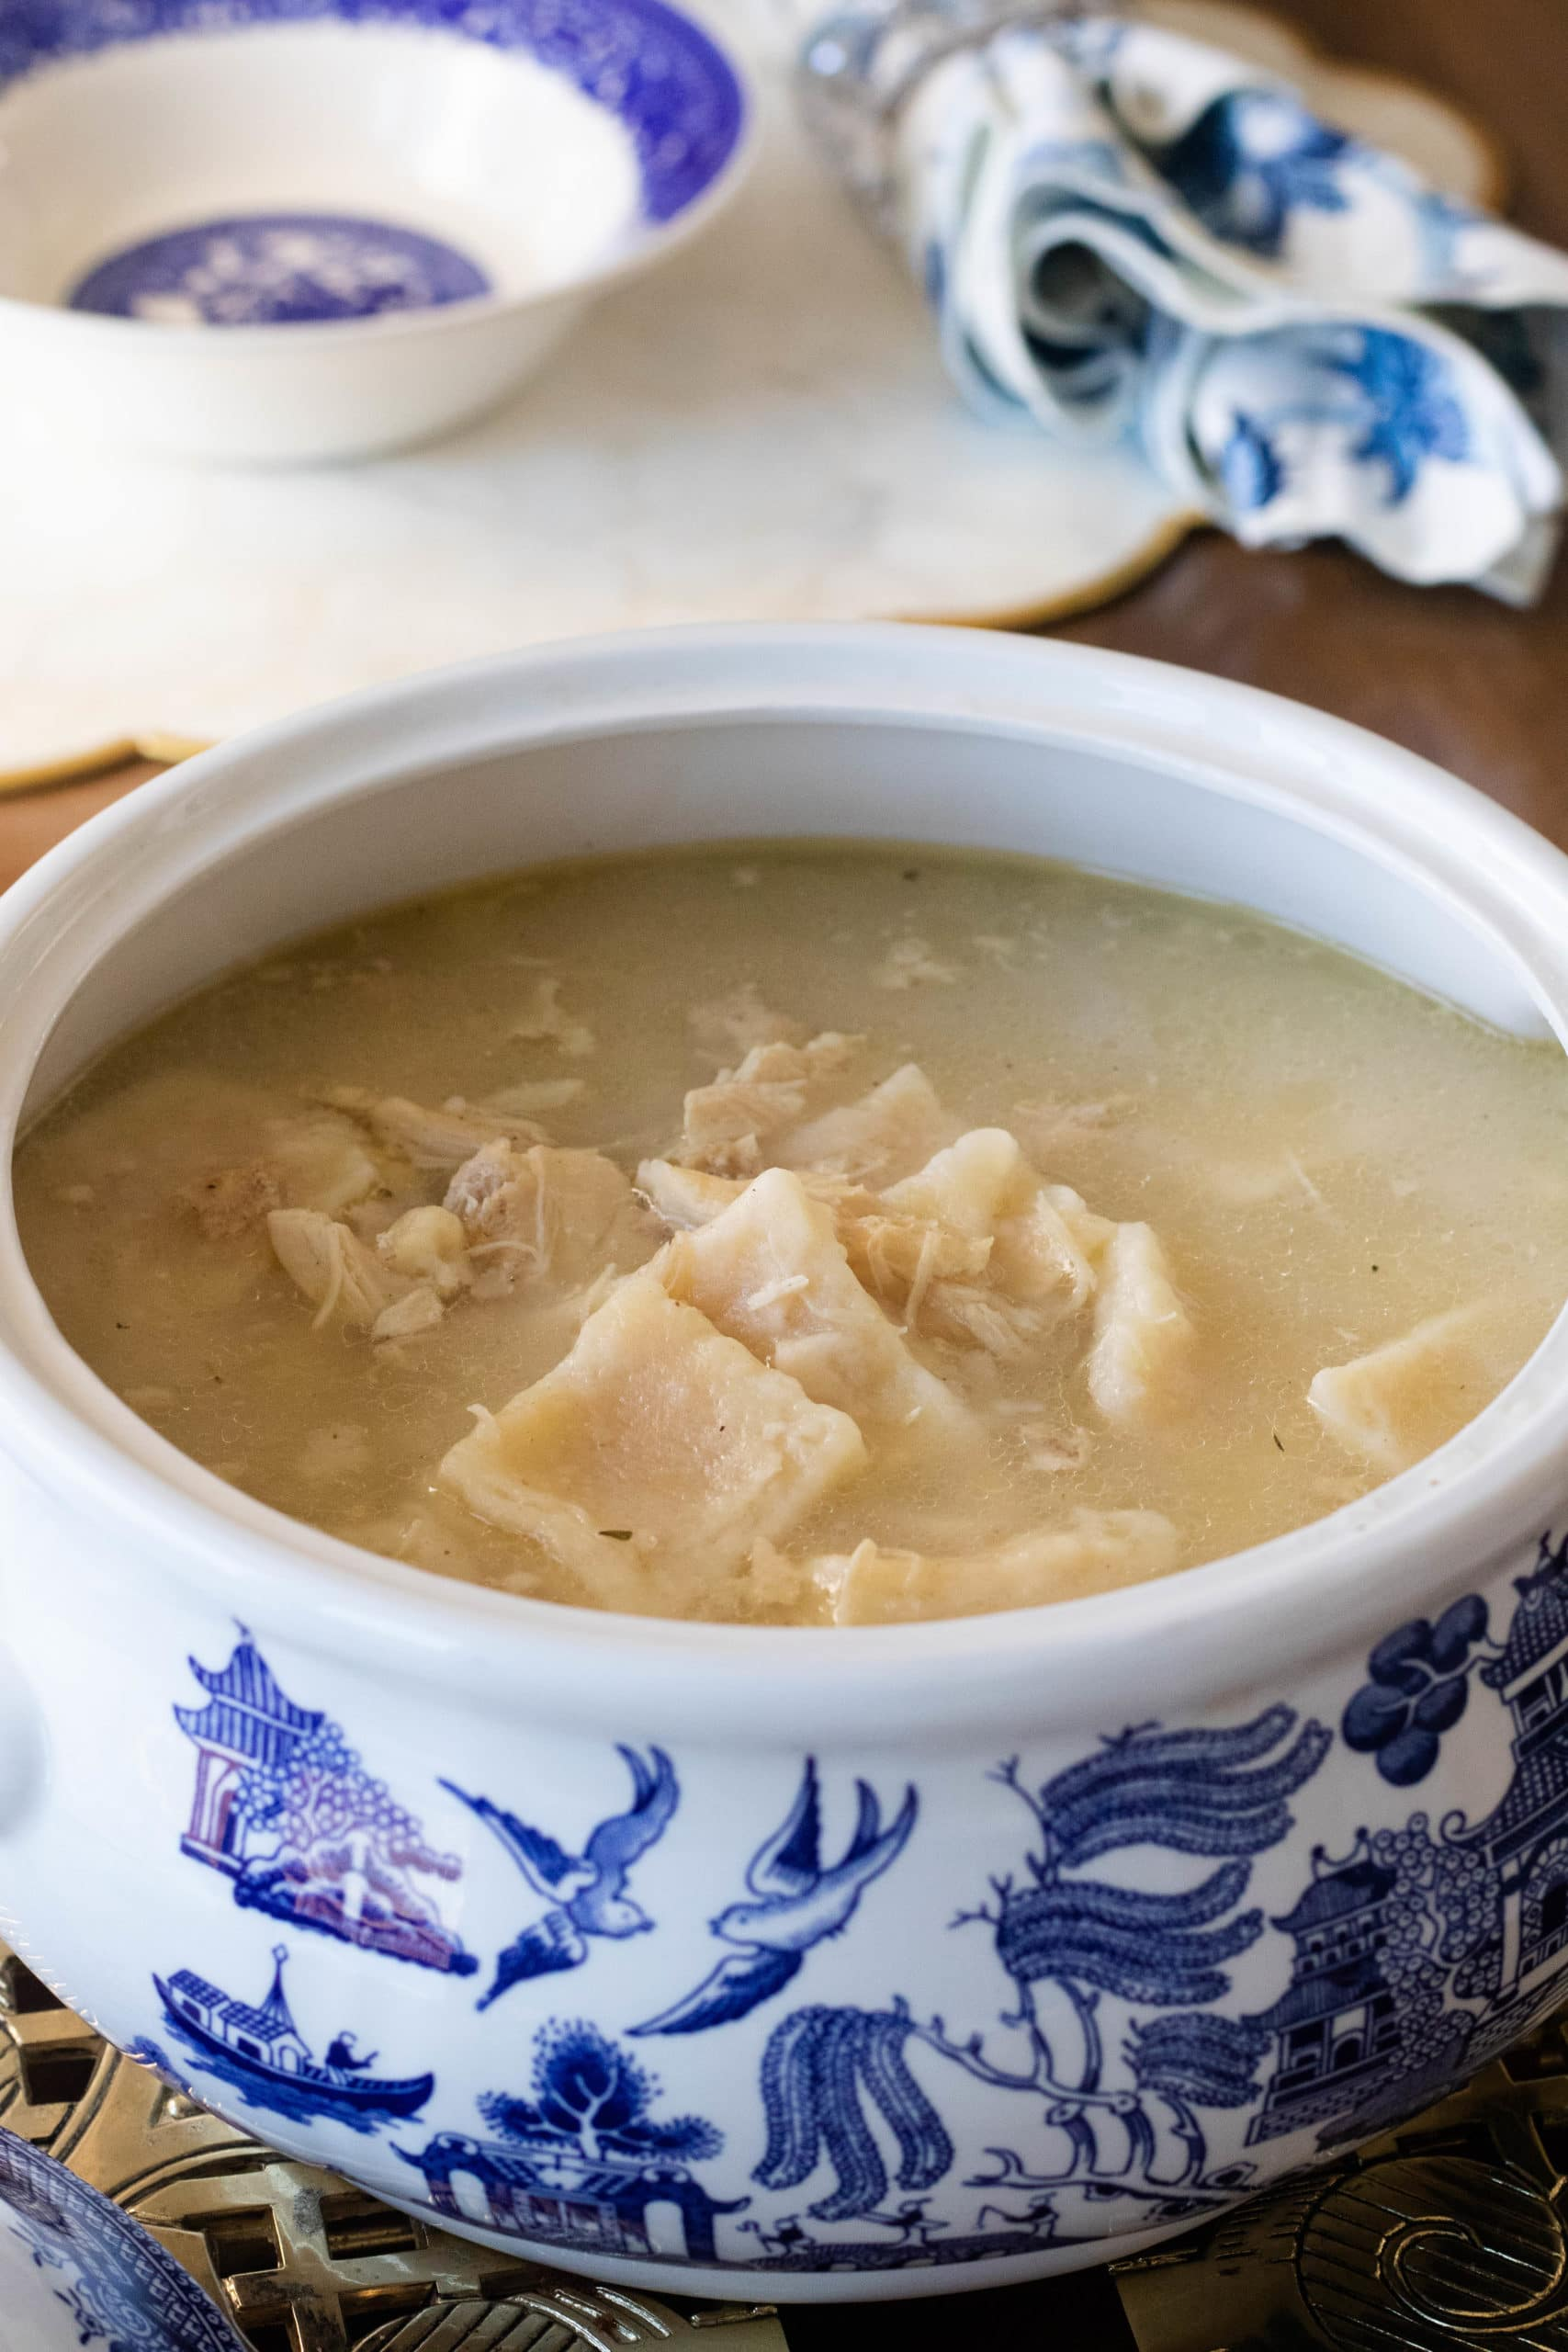 Pillowy soft dough dumplings and tender chicken are covered in a savory and thick broth.